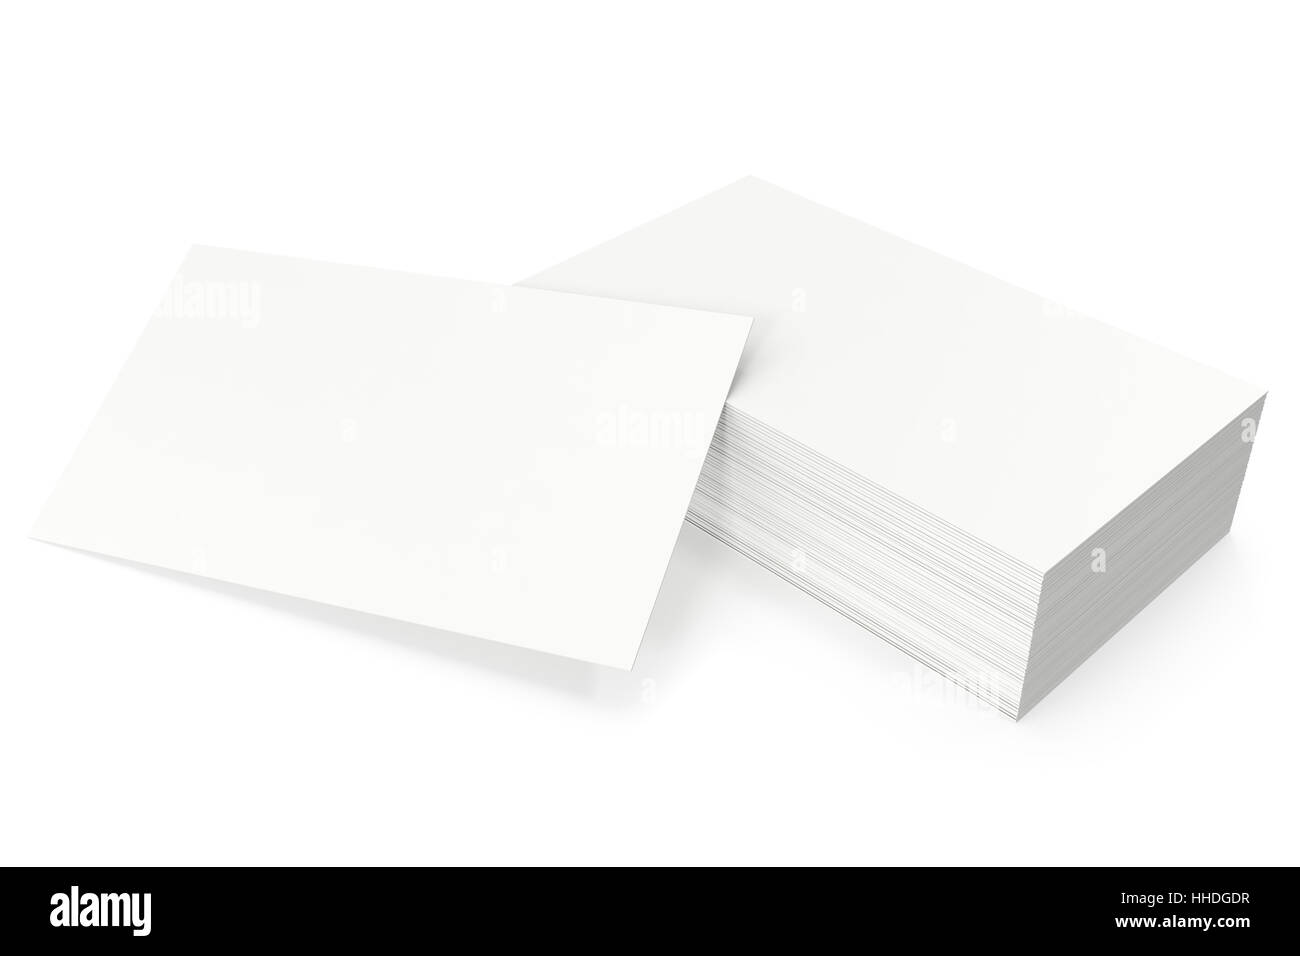 Business cards blank mockup template on white background 3d stock business cards blank mockup template on white background 3d rendering reheart Image collections